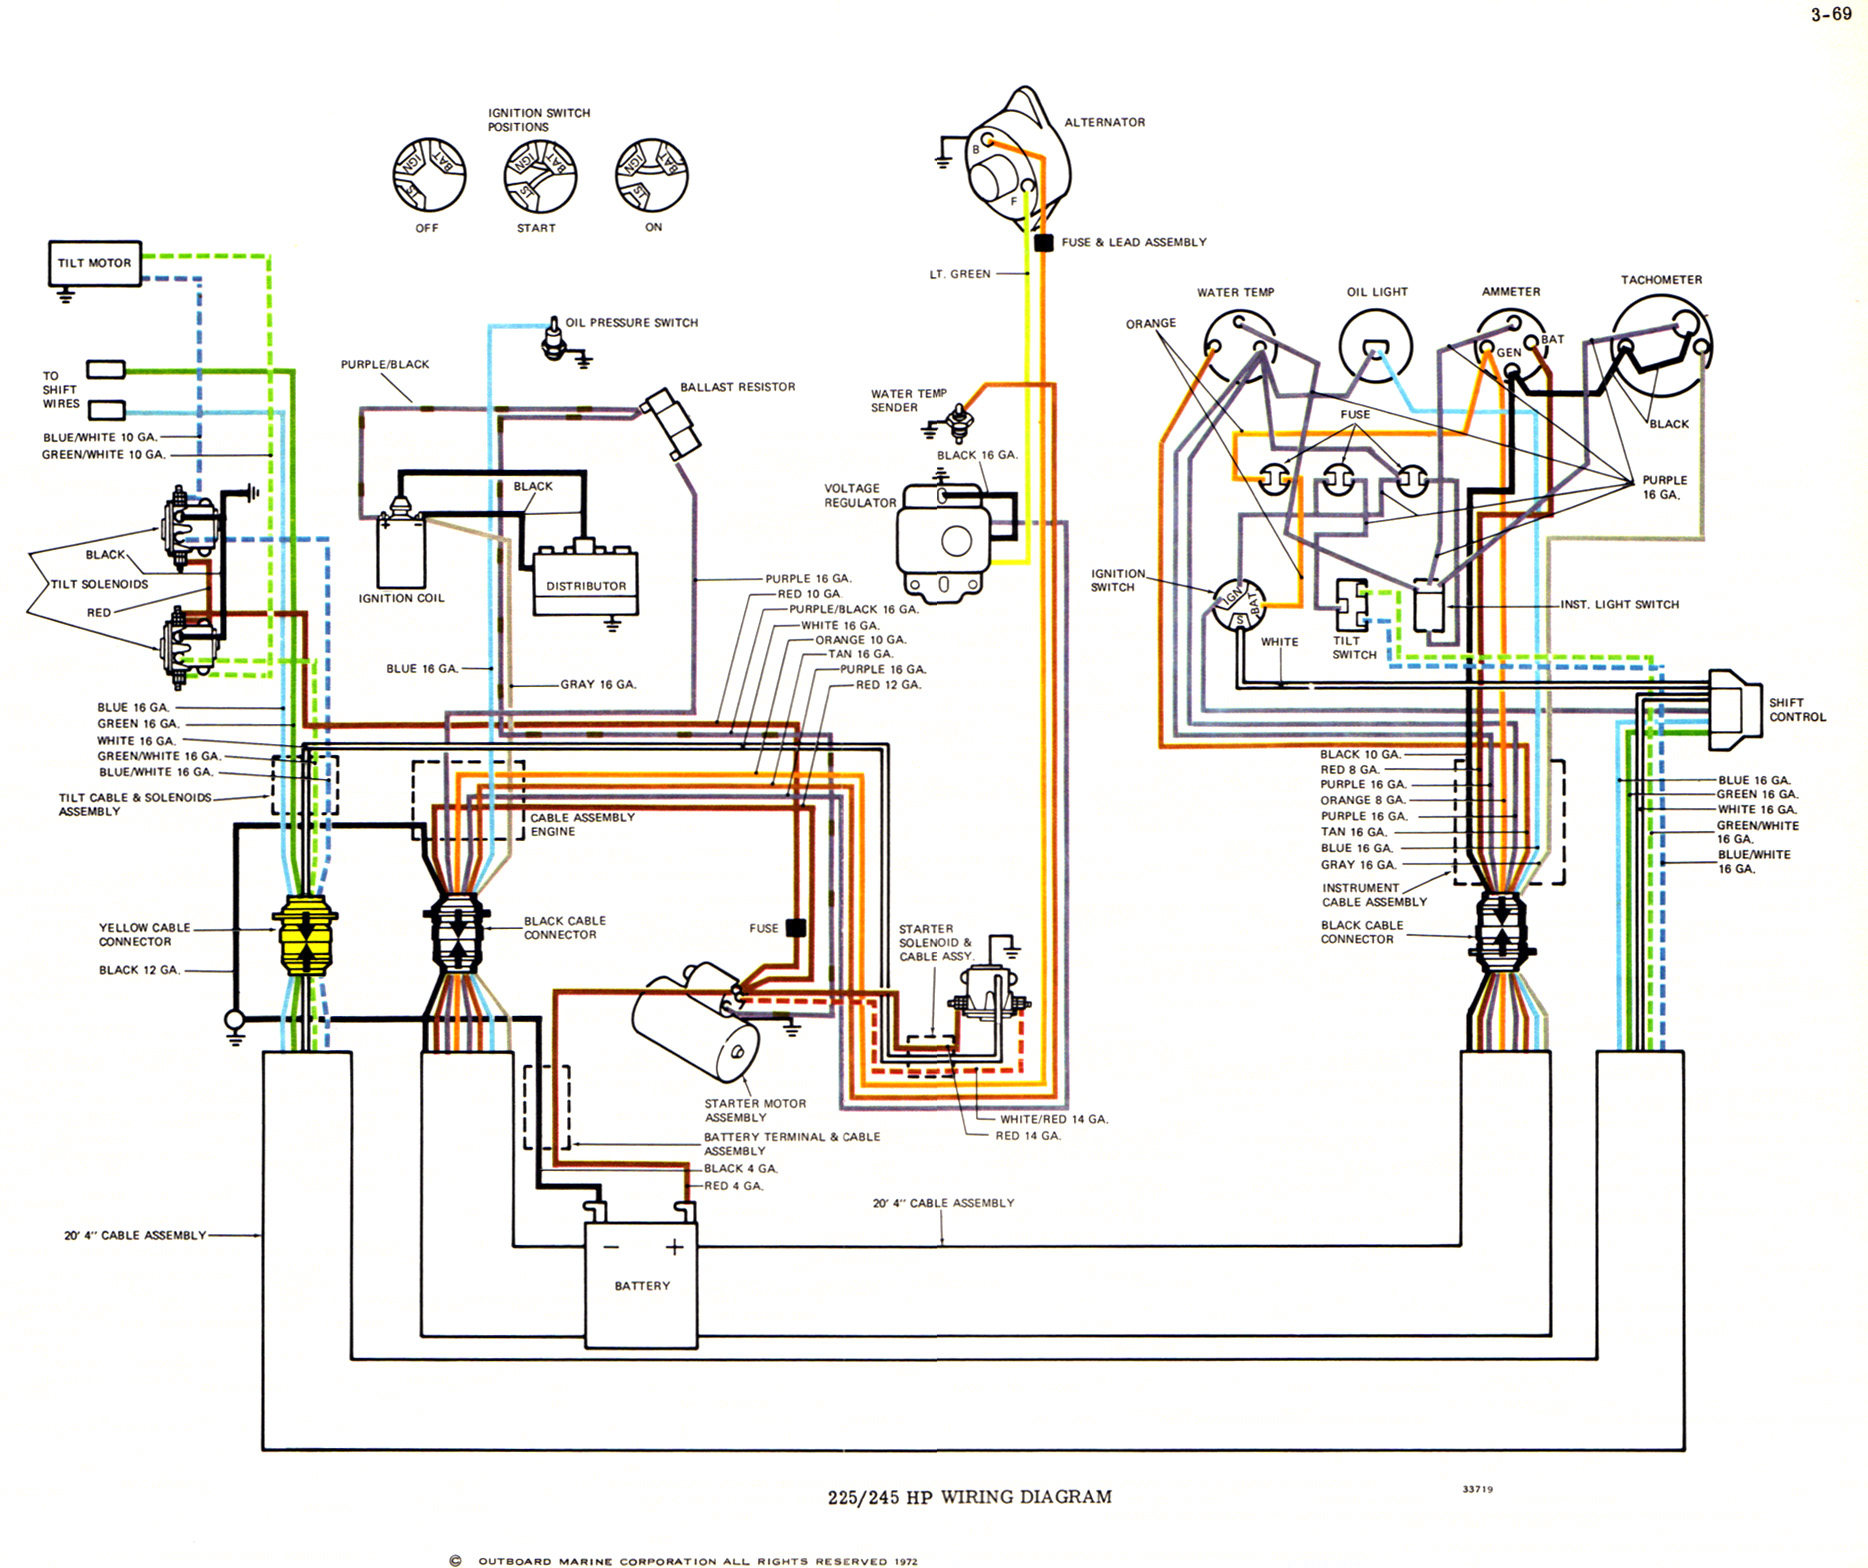 73_OMC_V8_all_big evinrude boats wiring � 2004 lee k shuster mercruiser ignition coil wiring diagram at gsmportal.co